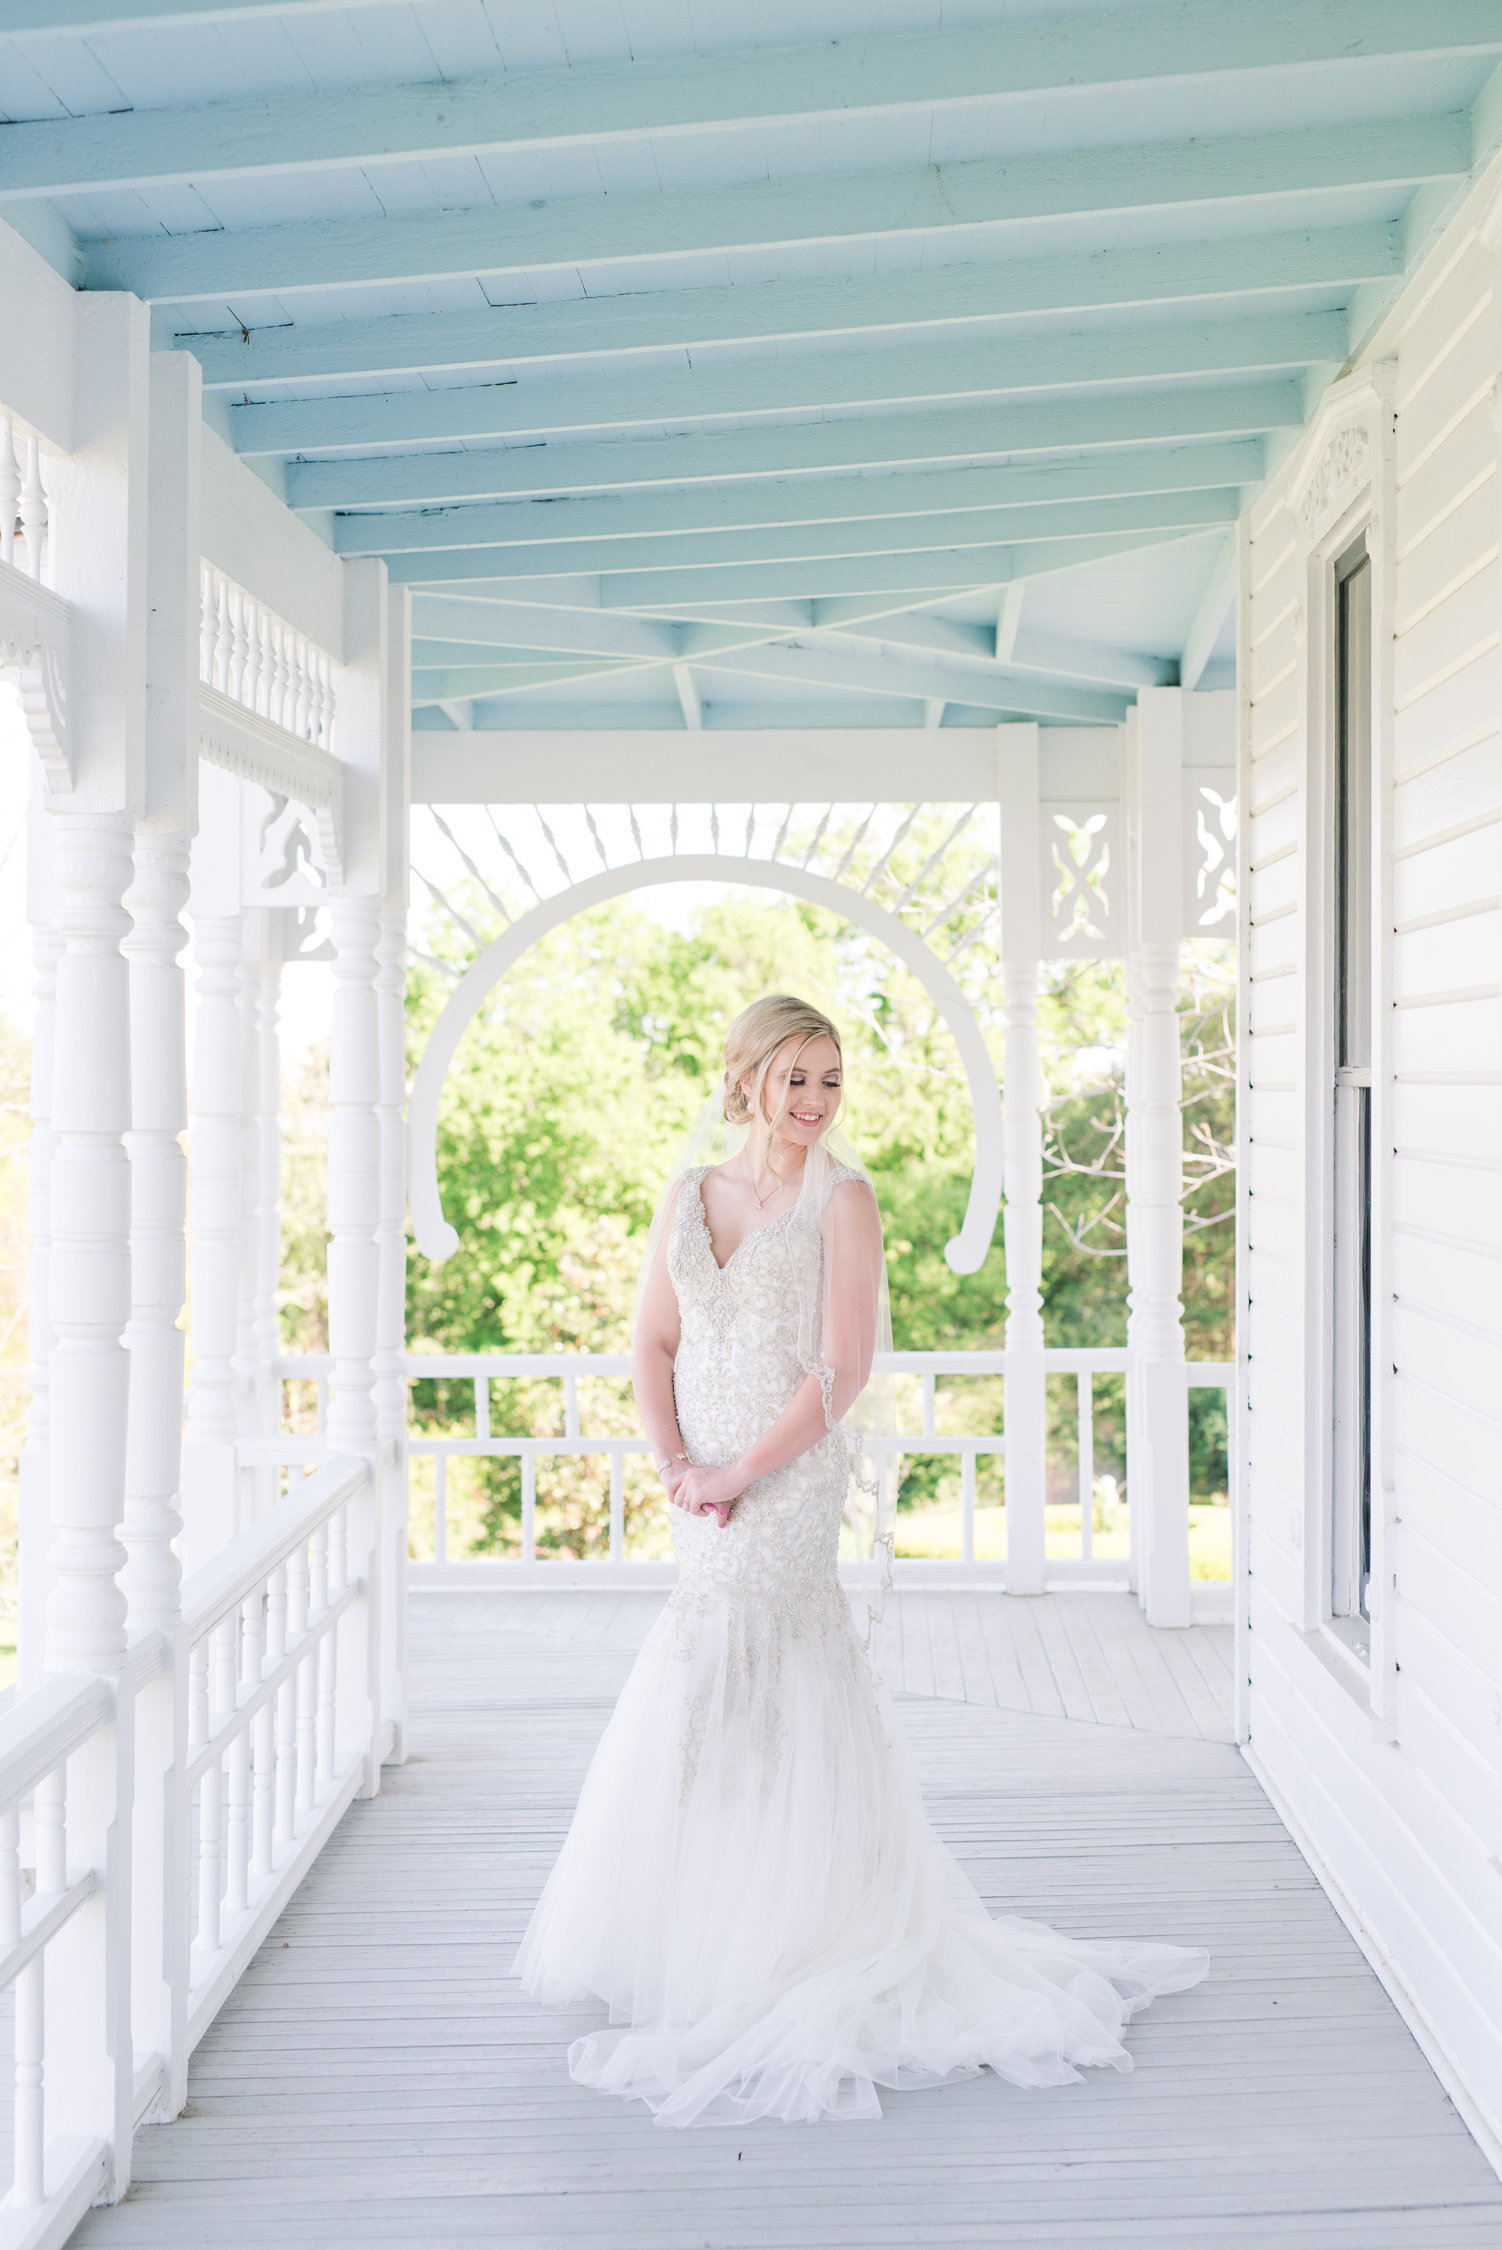 Barr Mansion Bride stands on balcony for portrait with veil